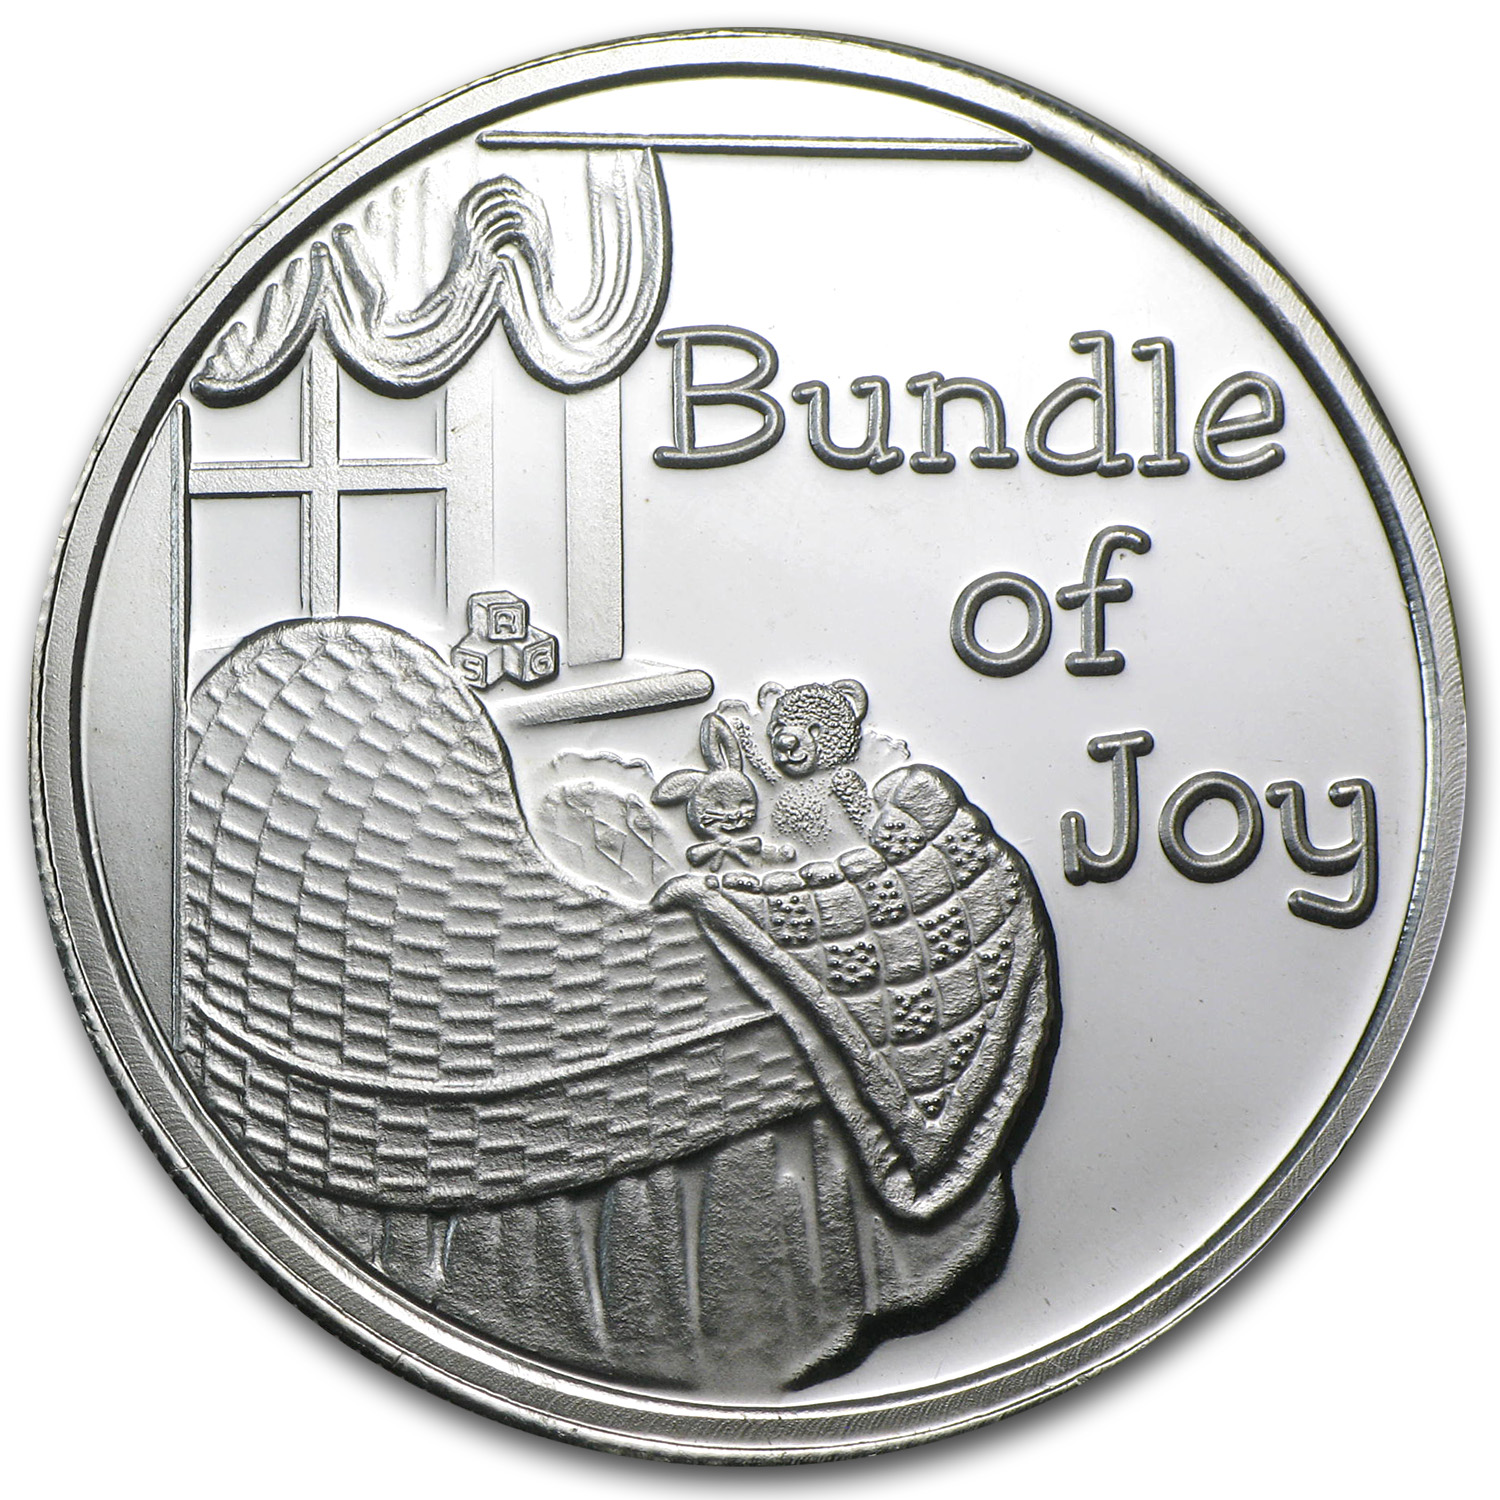 1 oz Silver Rounds - Bundle of Joy (w/Box & Capsule)